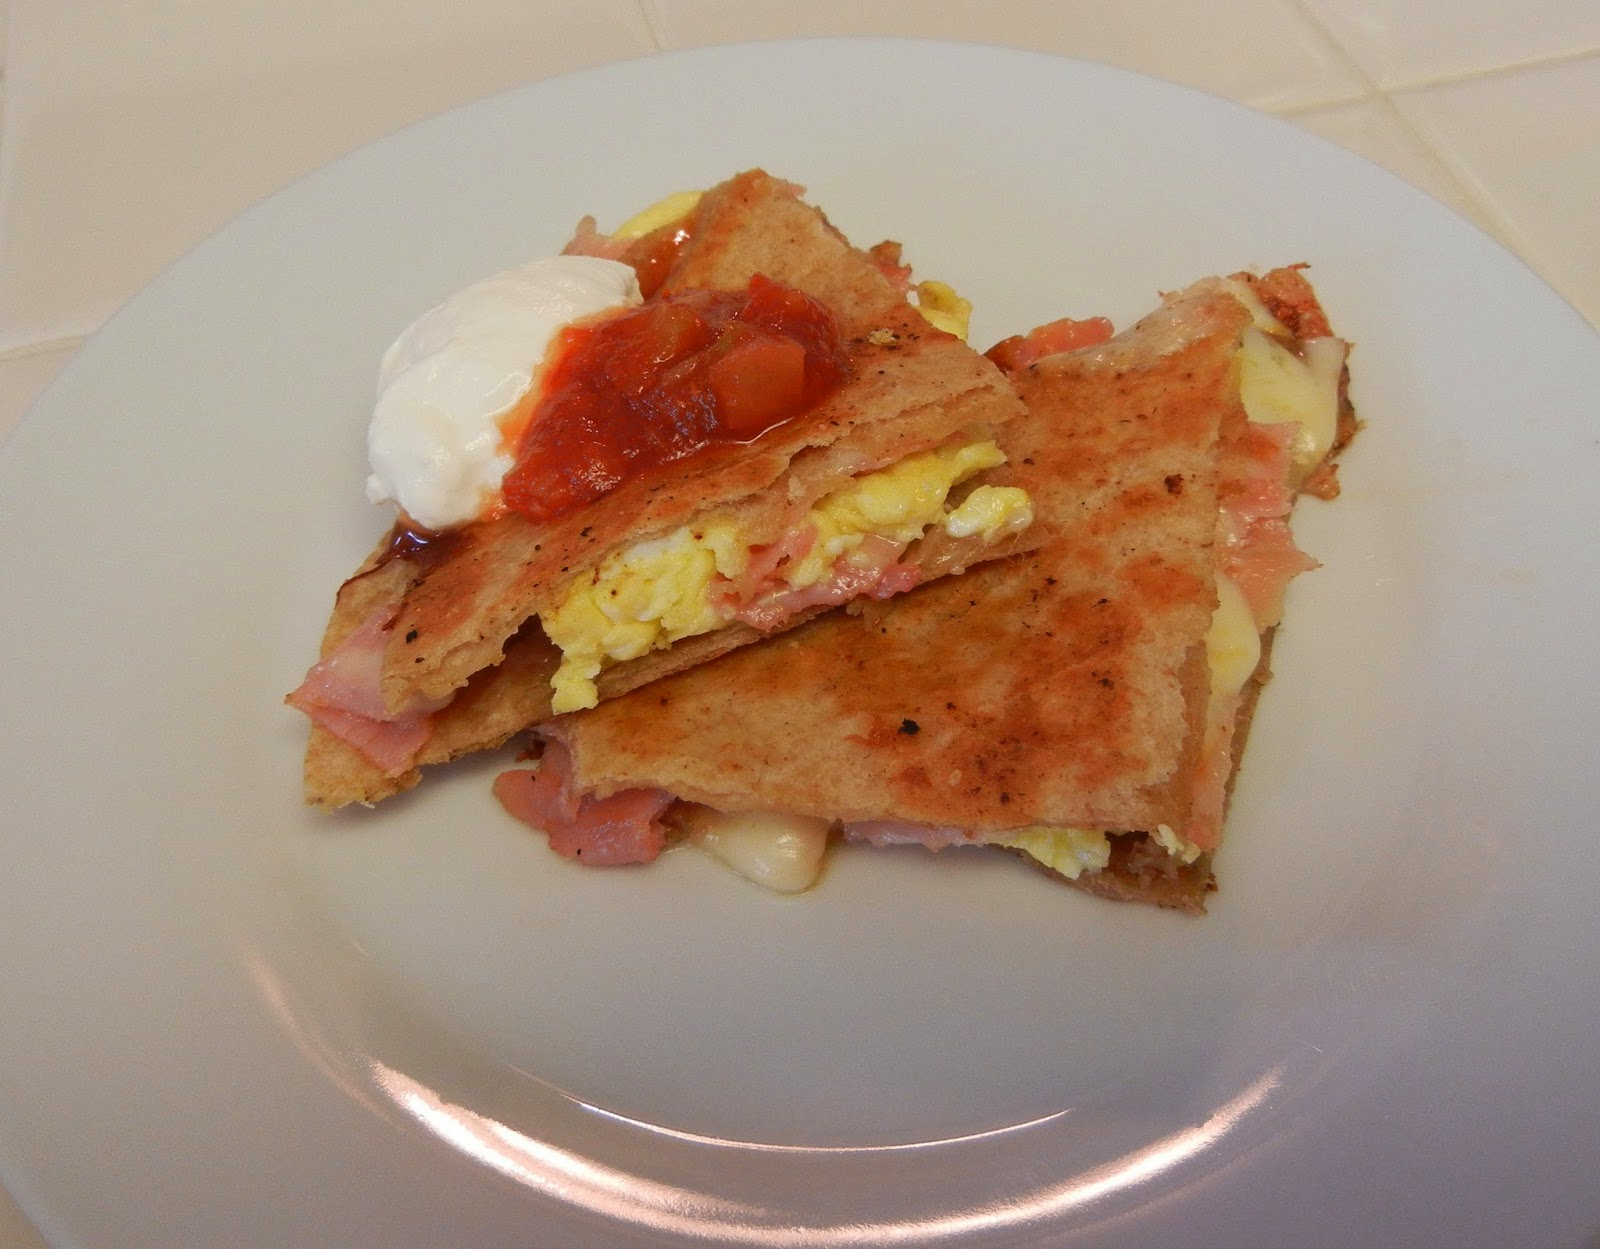 Breakfast%2BHam%2BEgg%2BCheese%2BQuesadilla Weight Loss Recipes Post Weight Loss Surgery Menus: A day in my pouch